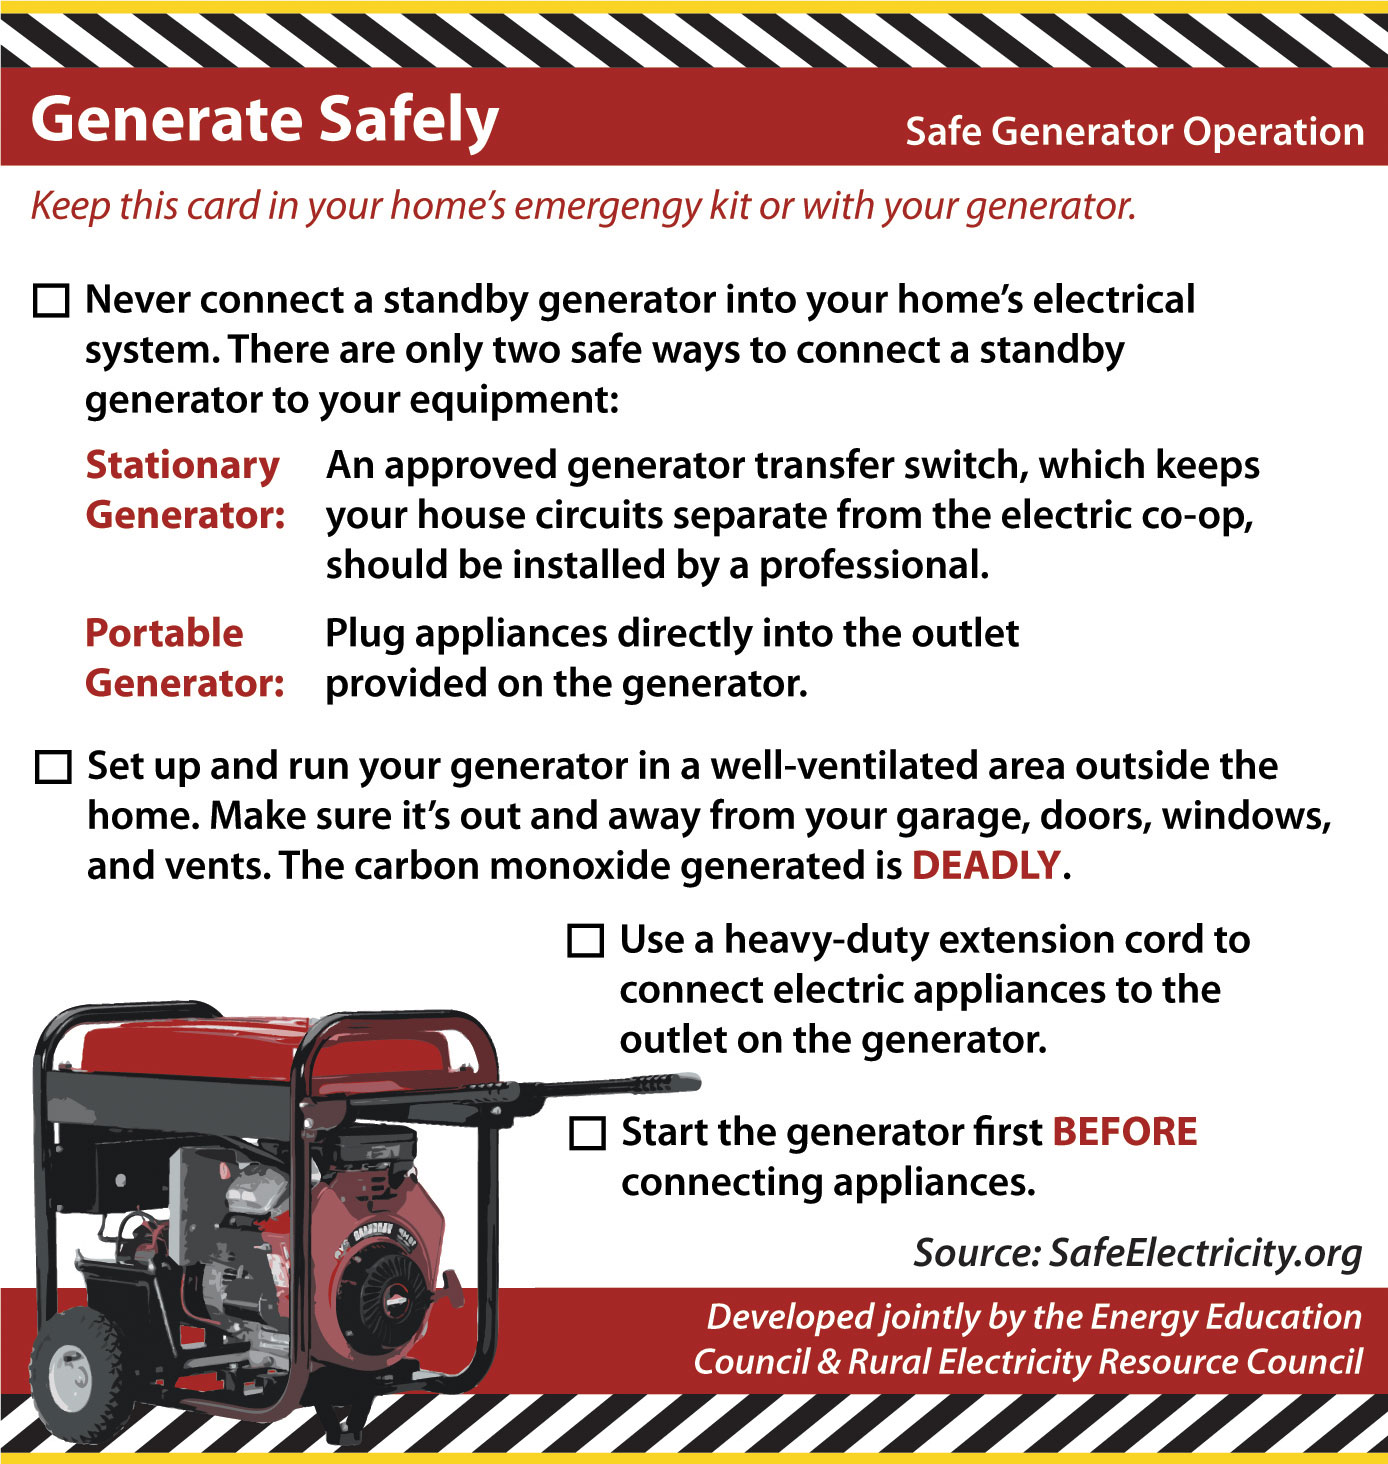 Safety Otero County Electric Cooperative Inc Ac Generator Schematic Diagram On Home Use Is Also A Major Cause Of Carbon Monoxide Co Poisoning Generators Should Only Be Used In Well Ventilated Areas